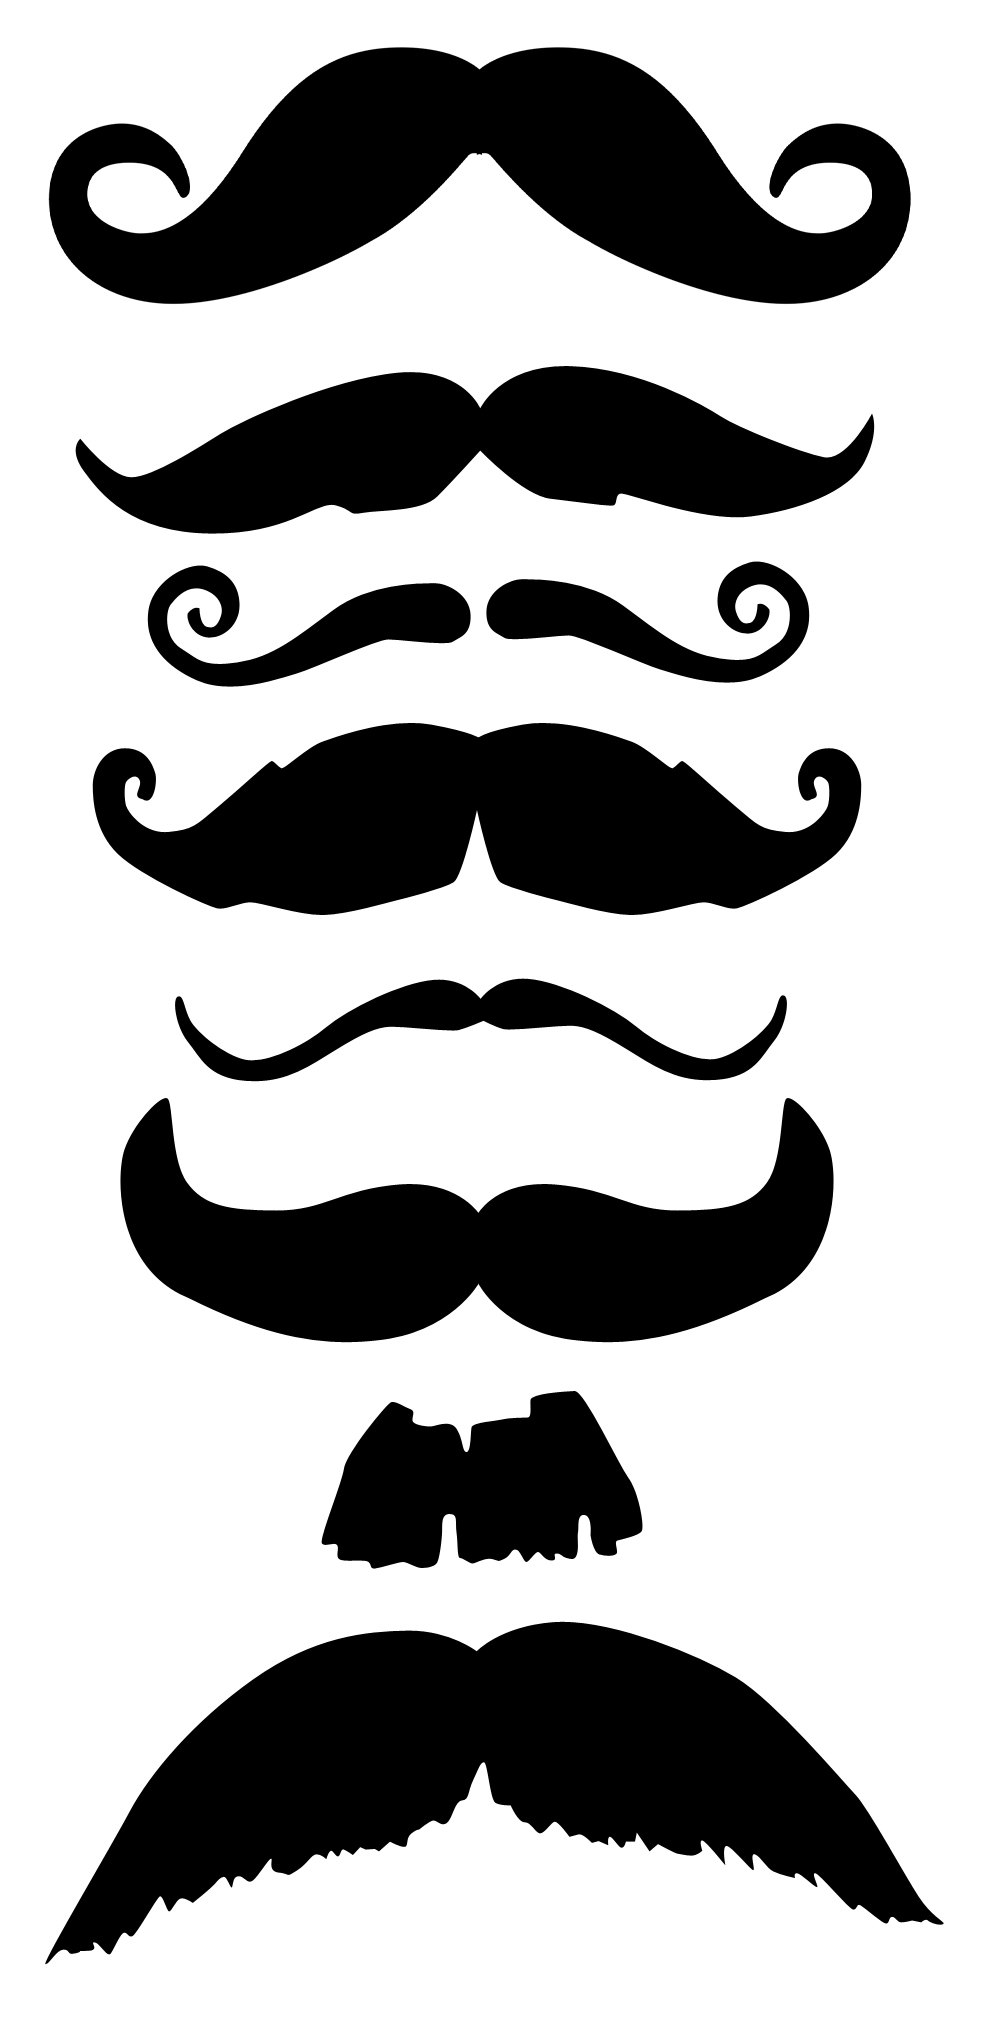 image about Printable Mustaches named Absolutely free Printable Mustaches : Mustache Moustache Template